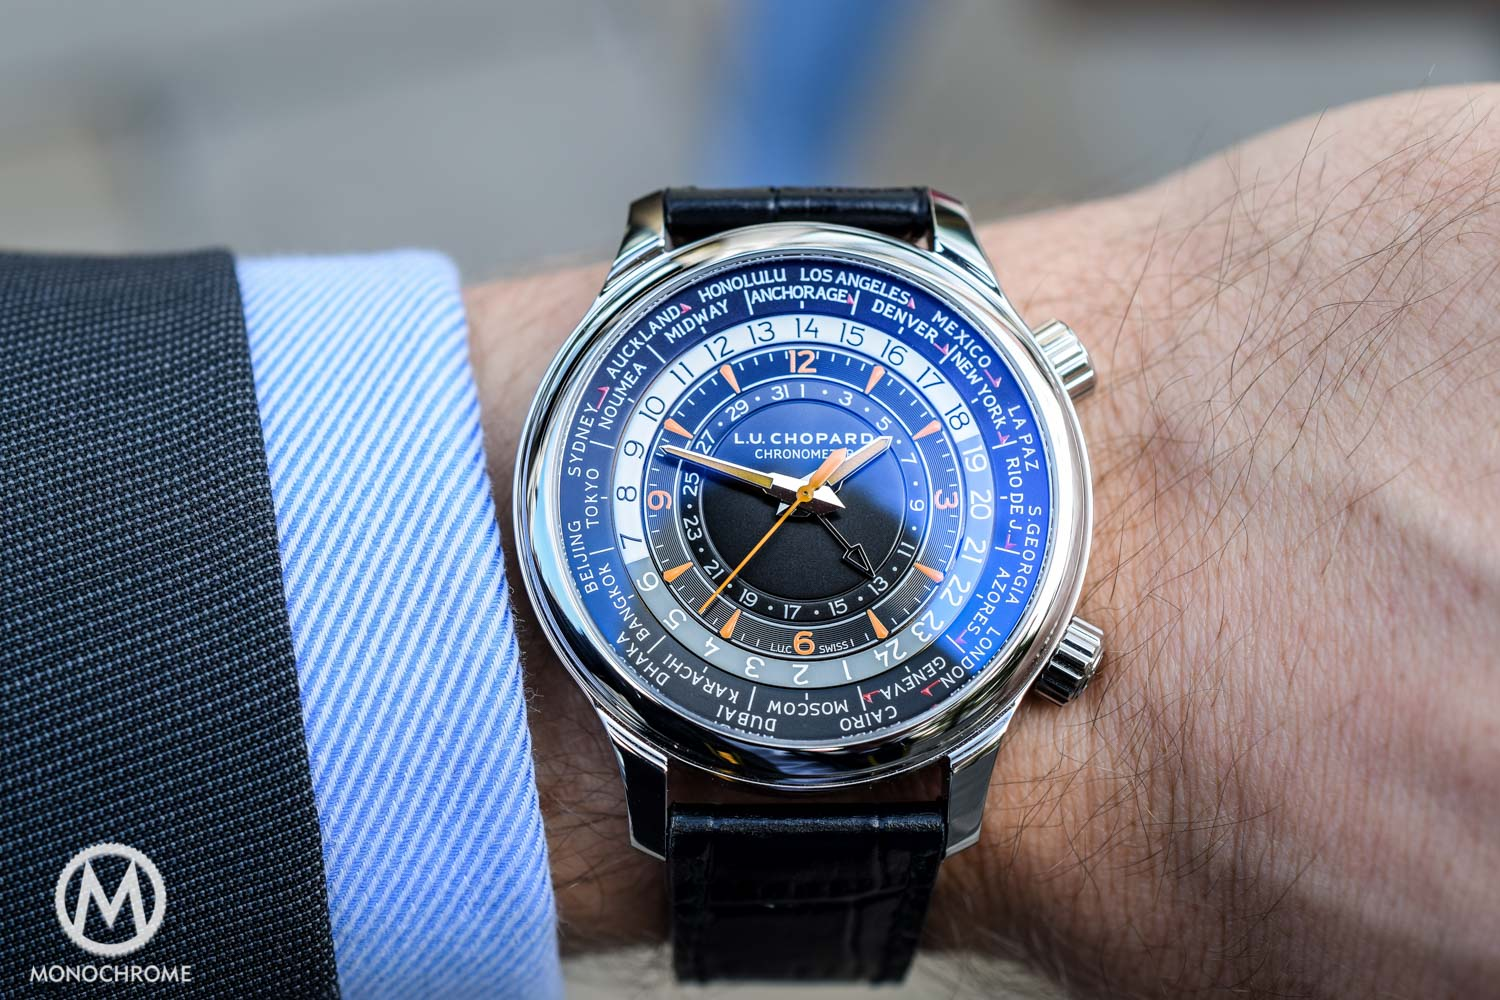 Chopard LUC Time Traveller One stainless steel